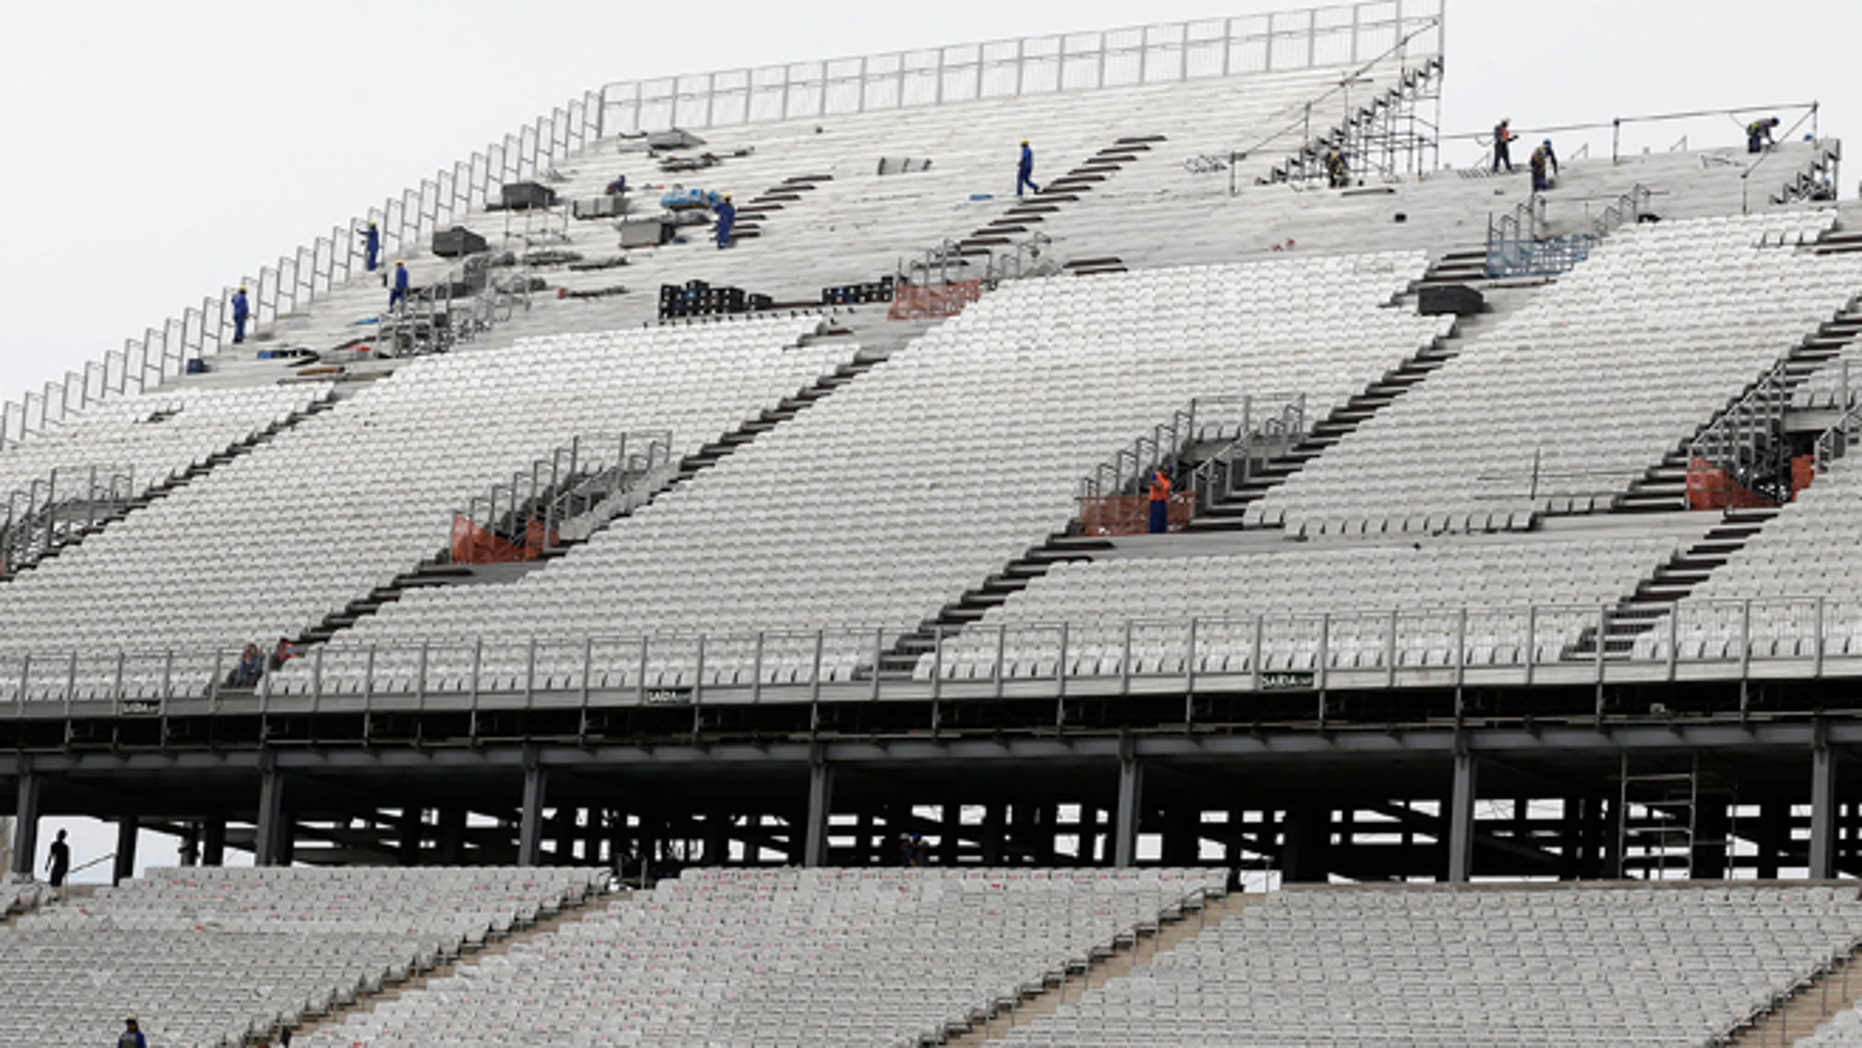 Laborers work on the construction of the Itaquerao stadium in Sao Paulo, Brazil, Tuesday, April 22, 2014. FIFA Secretary General Jerome Valcke said Tuesday there's still a lot of work to do at the stadium, but added that it will be ready for the opening match between Brazil and Croatia in June. (AP Photo/Andre Penner)